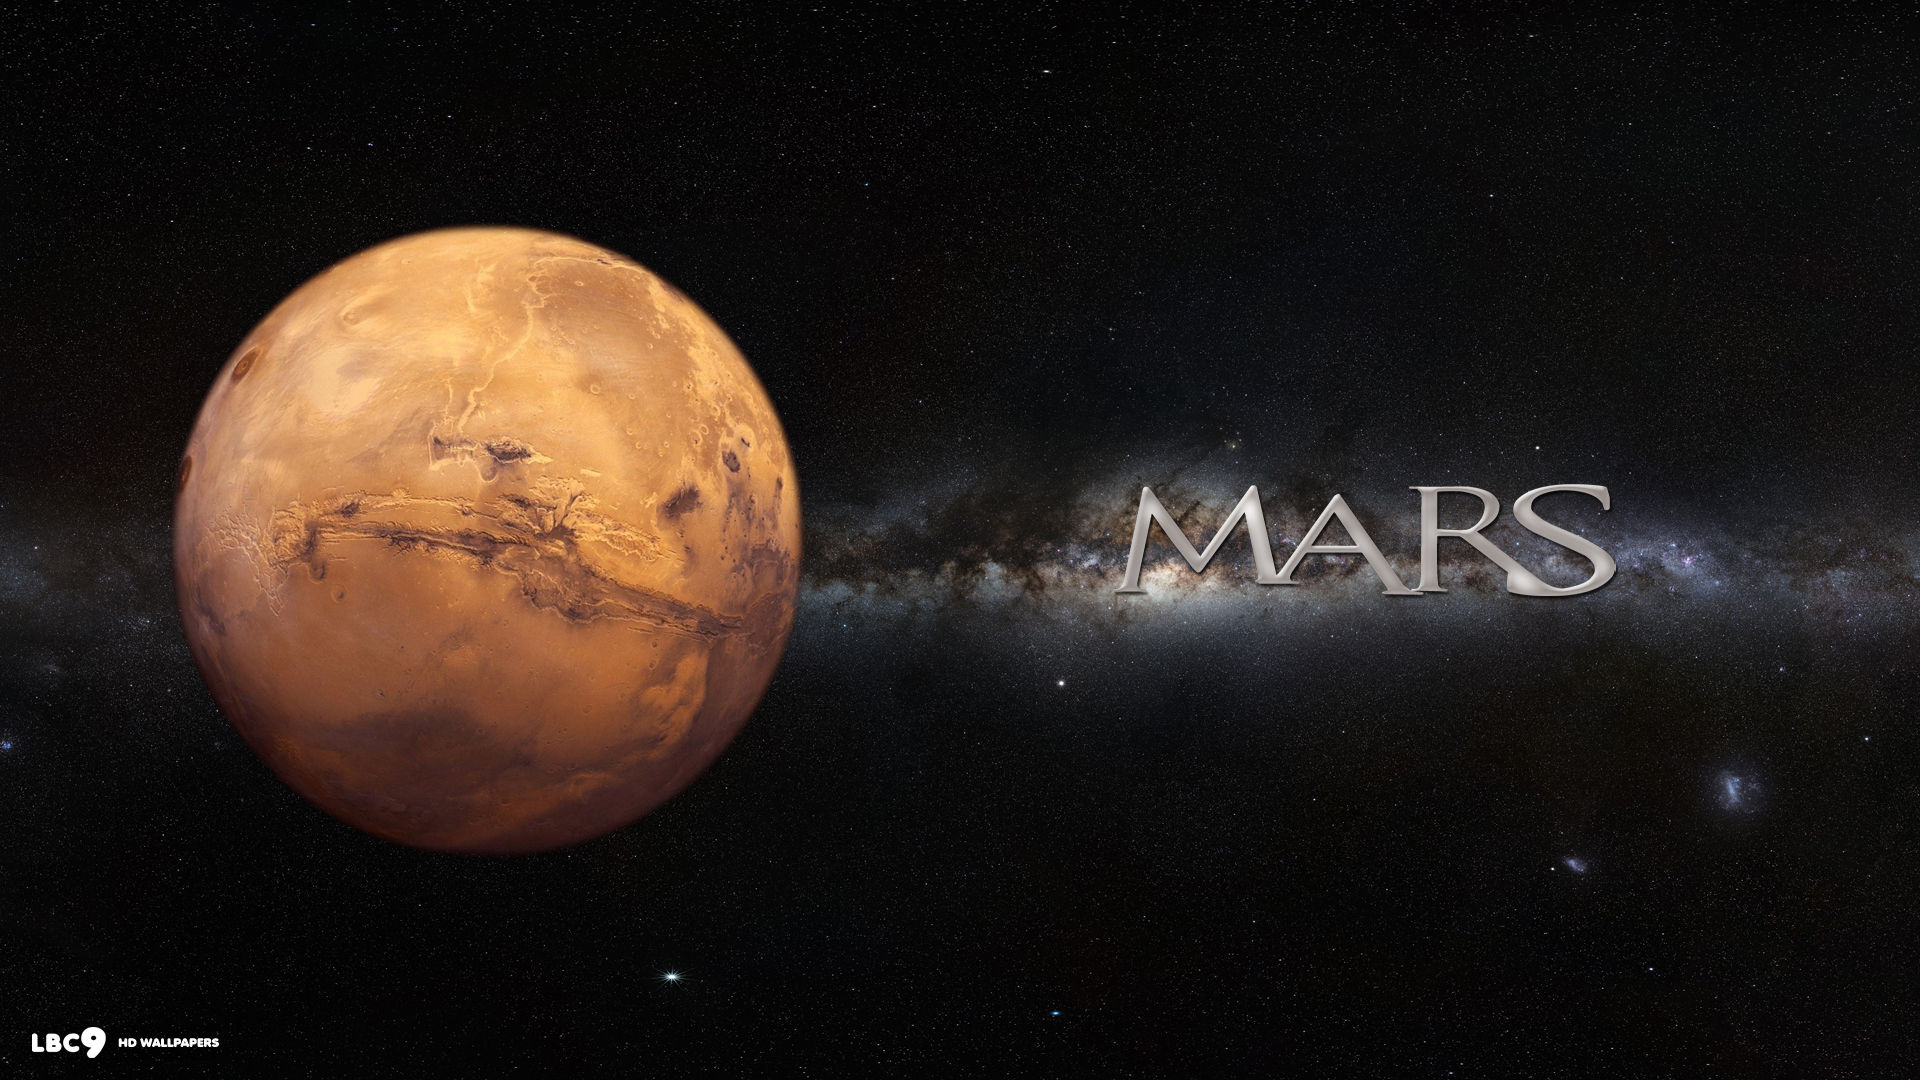 mars wallpaper HD